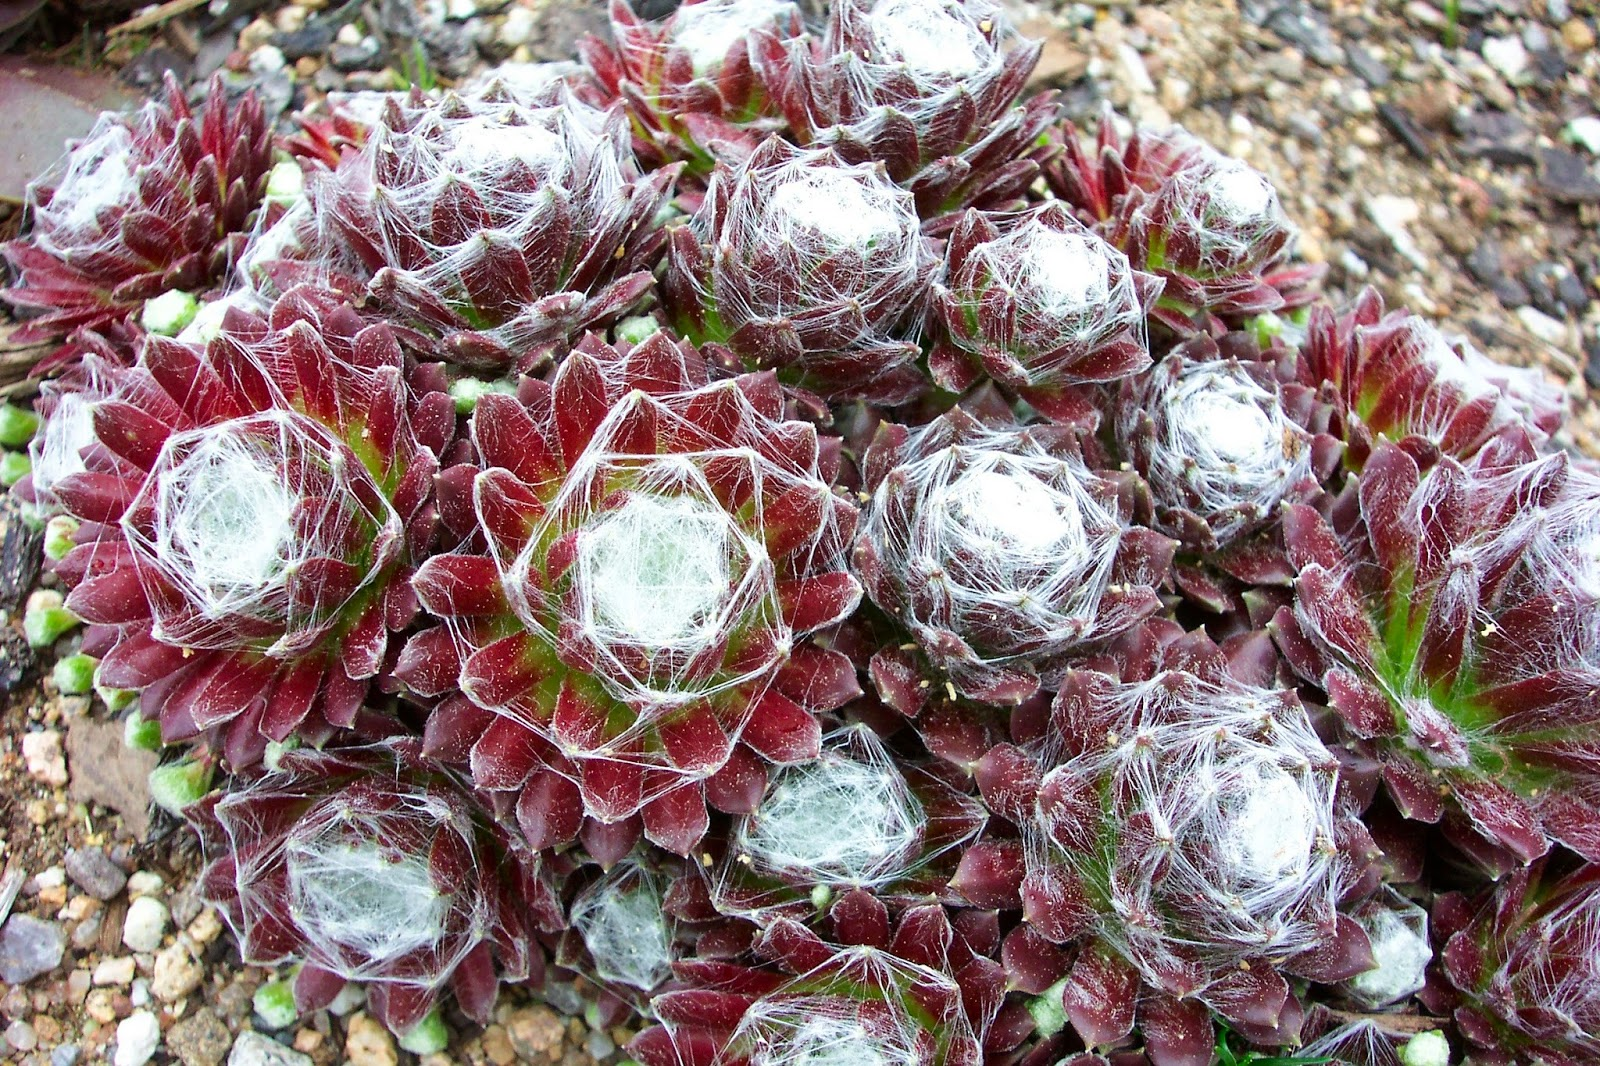 Plant of the Day: Plant of the day is: Sempervivum arachnoideum or.